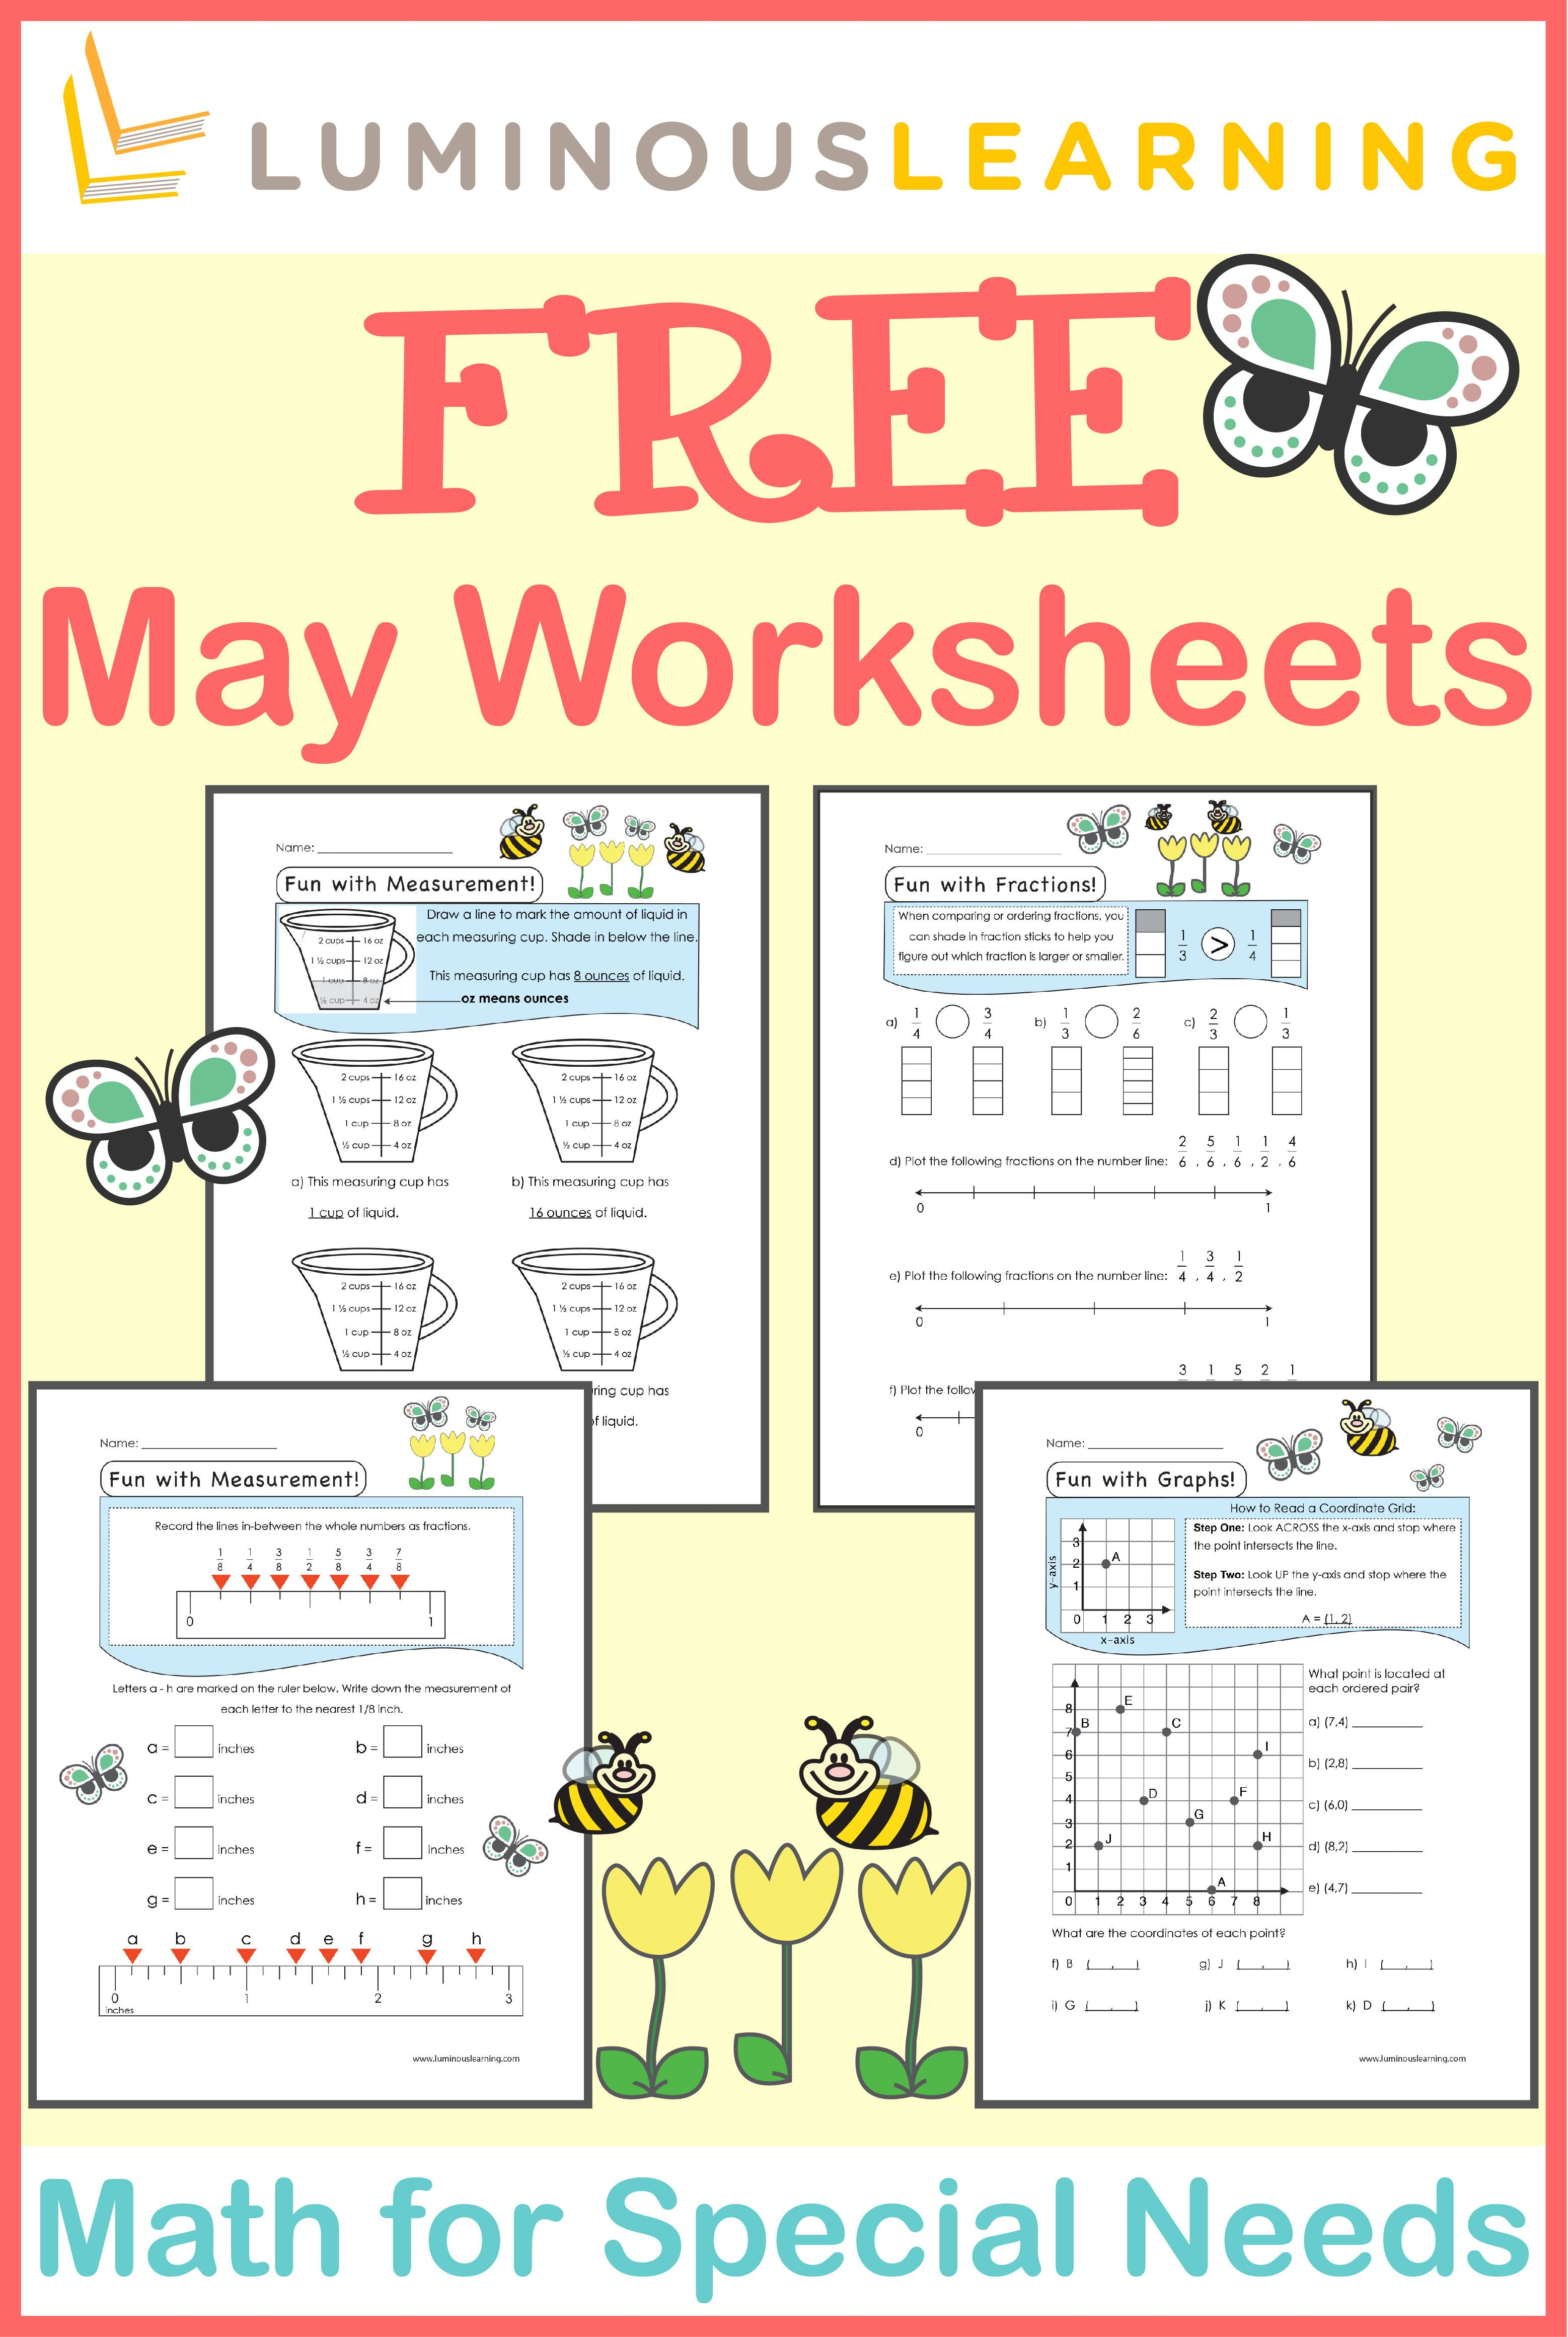 Luminous Learning worksheets are designed with built-in ...